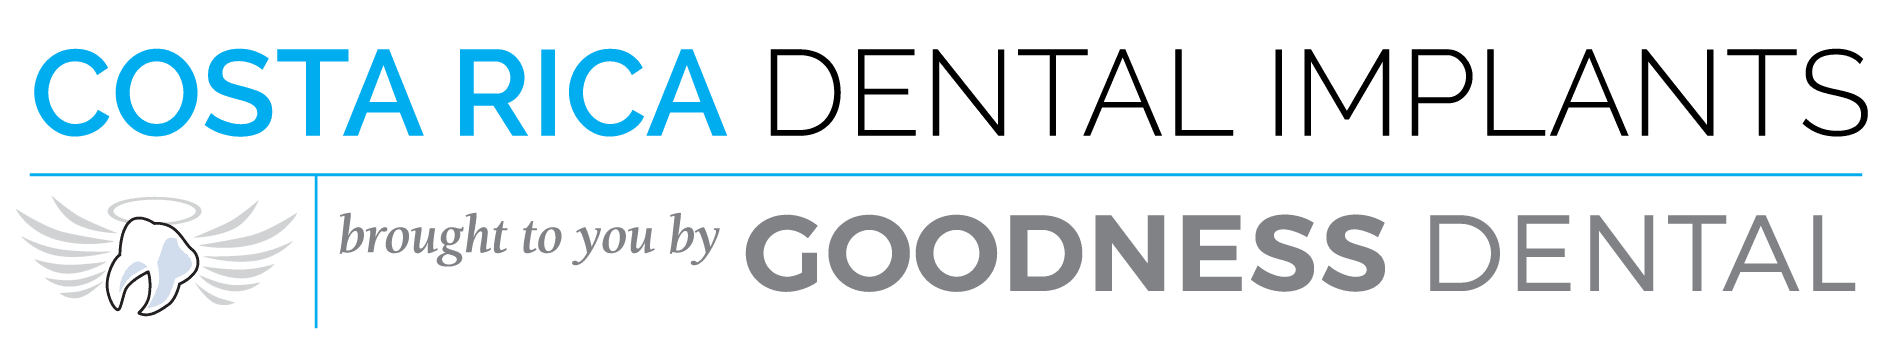 Costa Rica Dental Implants